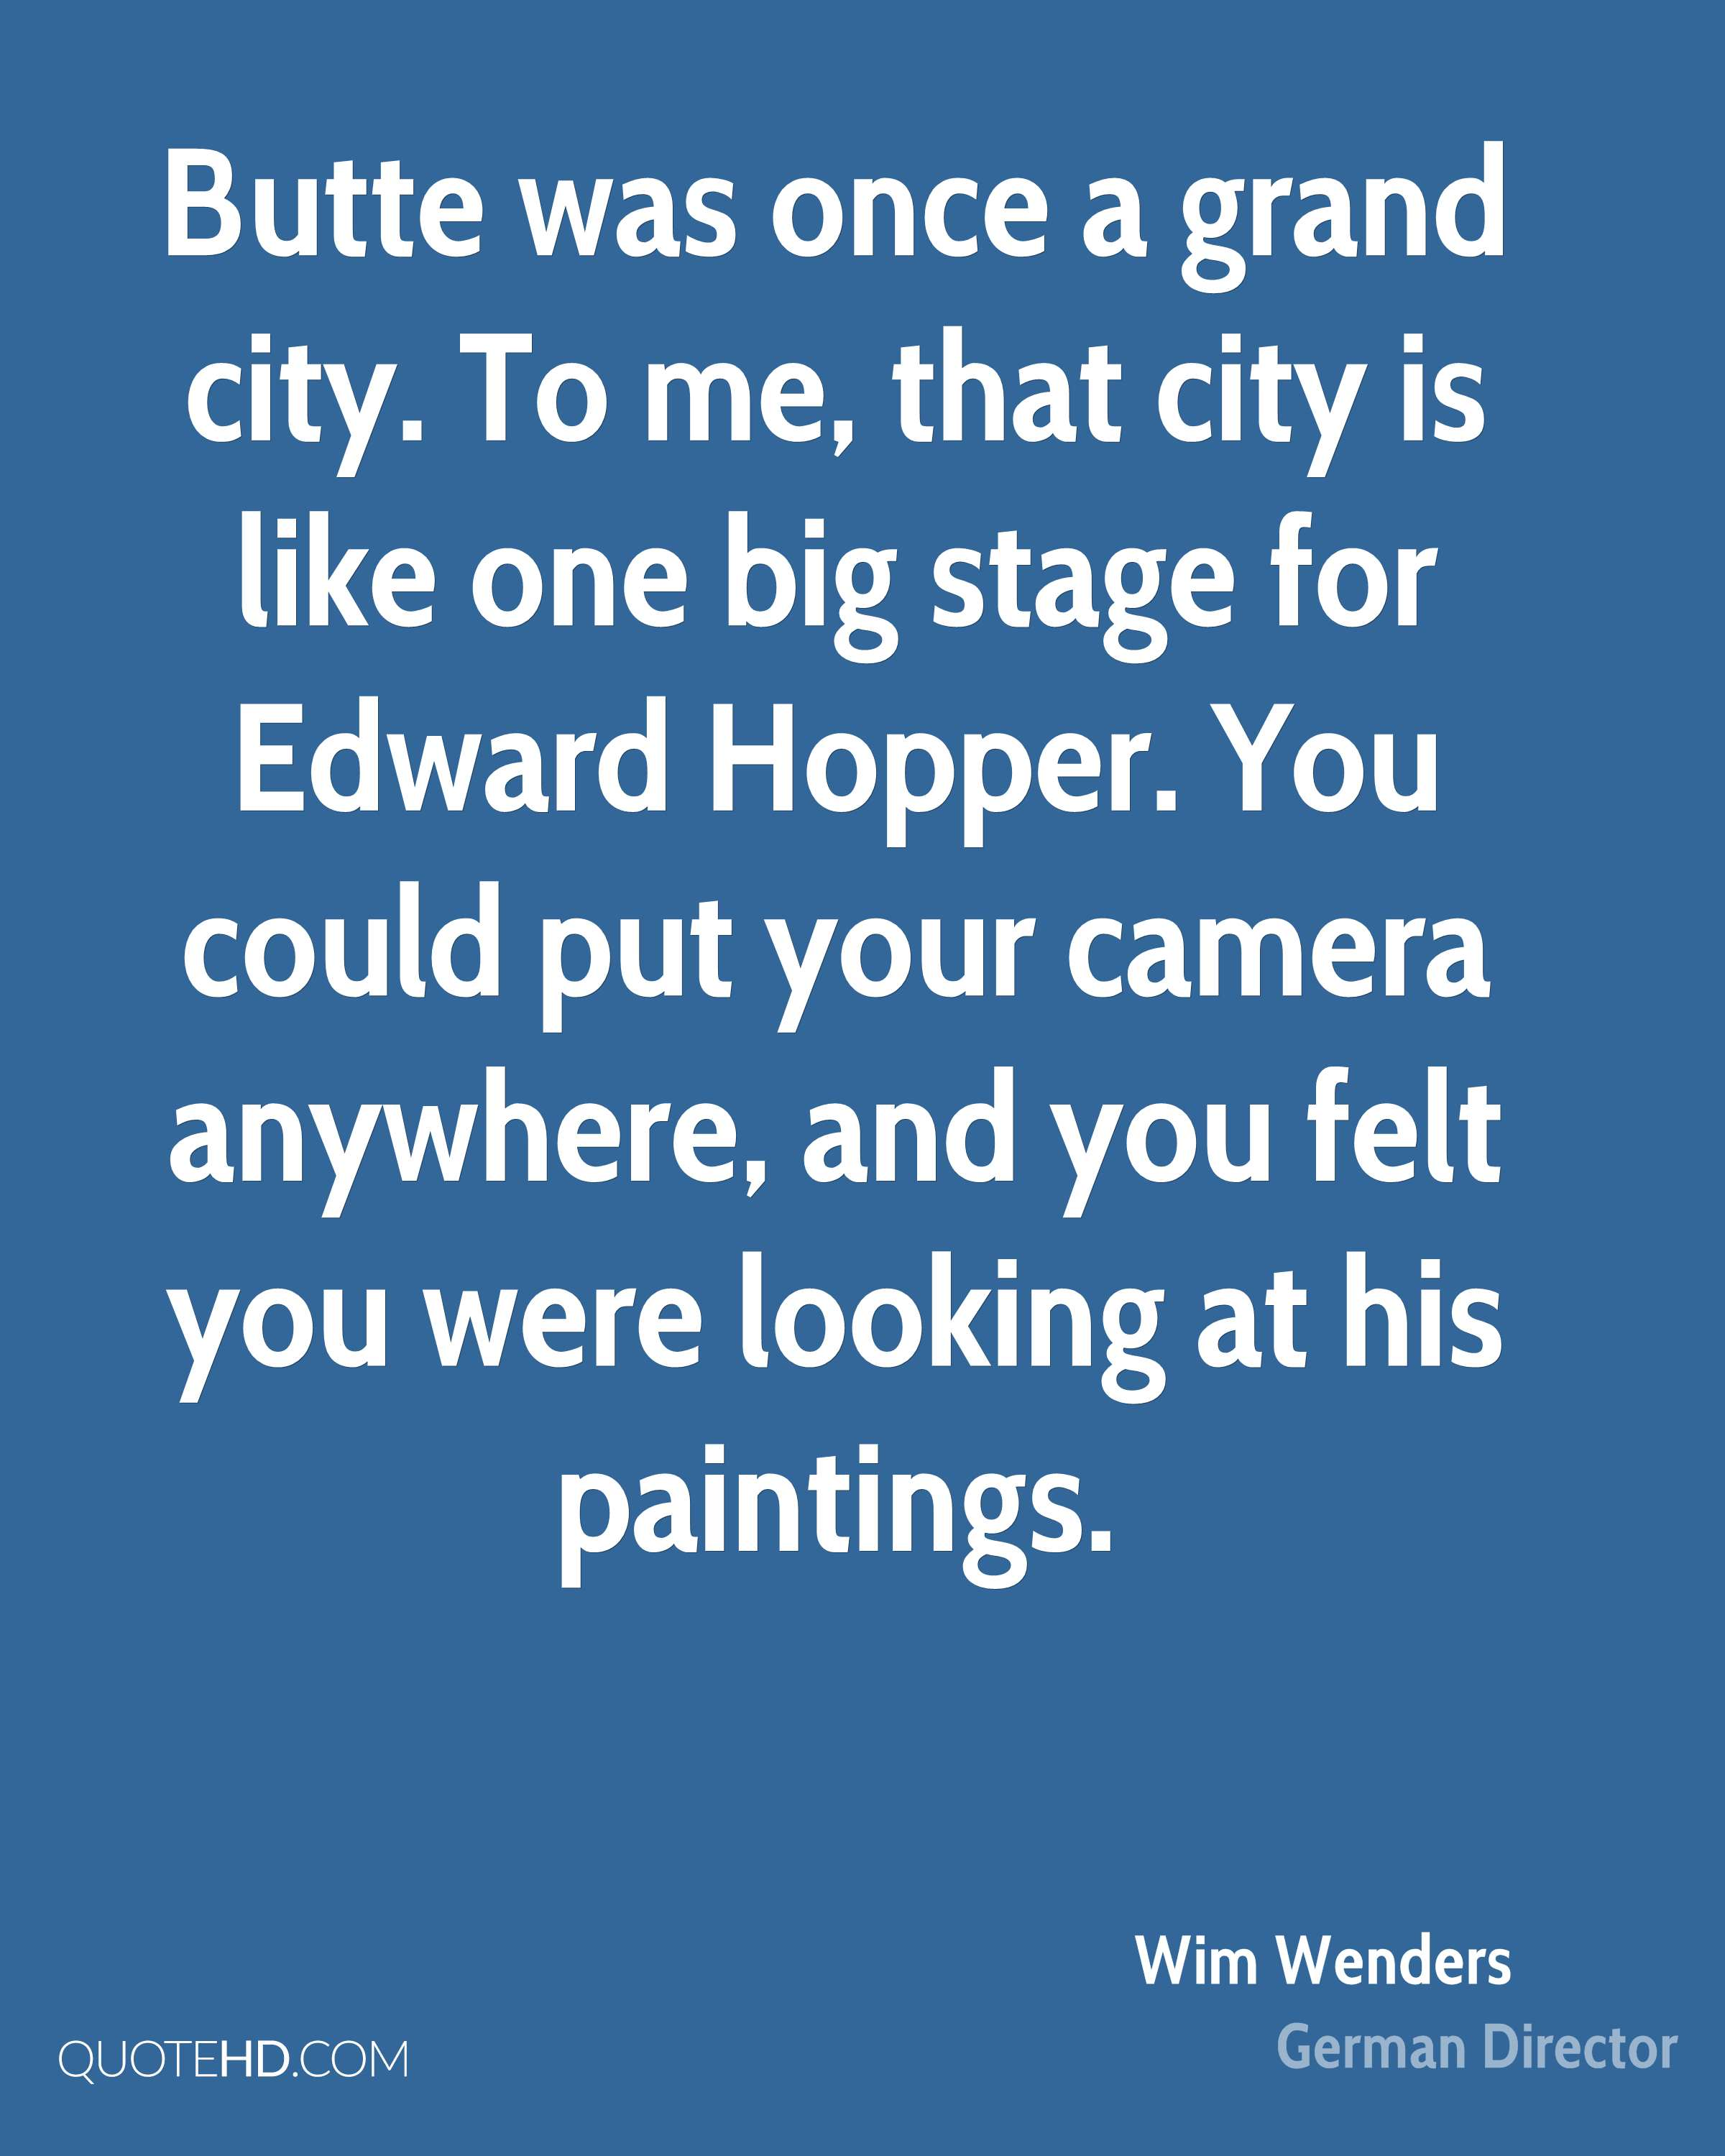 Butte was once a grand city. To me, that city is like one big stage for Edward Hopper. You could put your camera anywhere, and you felt you were looking at his paintings.